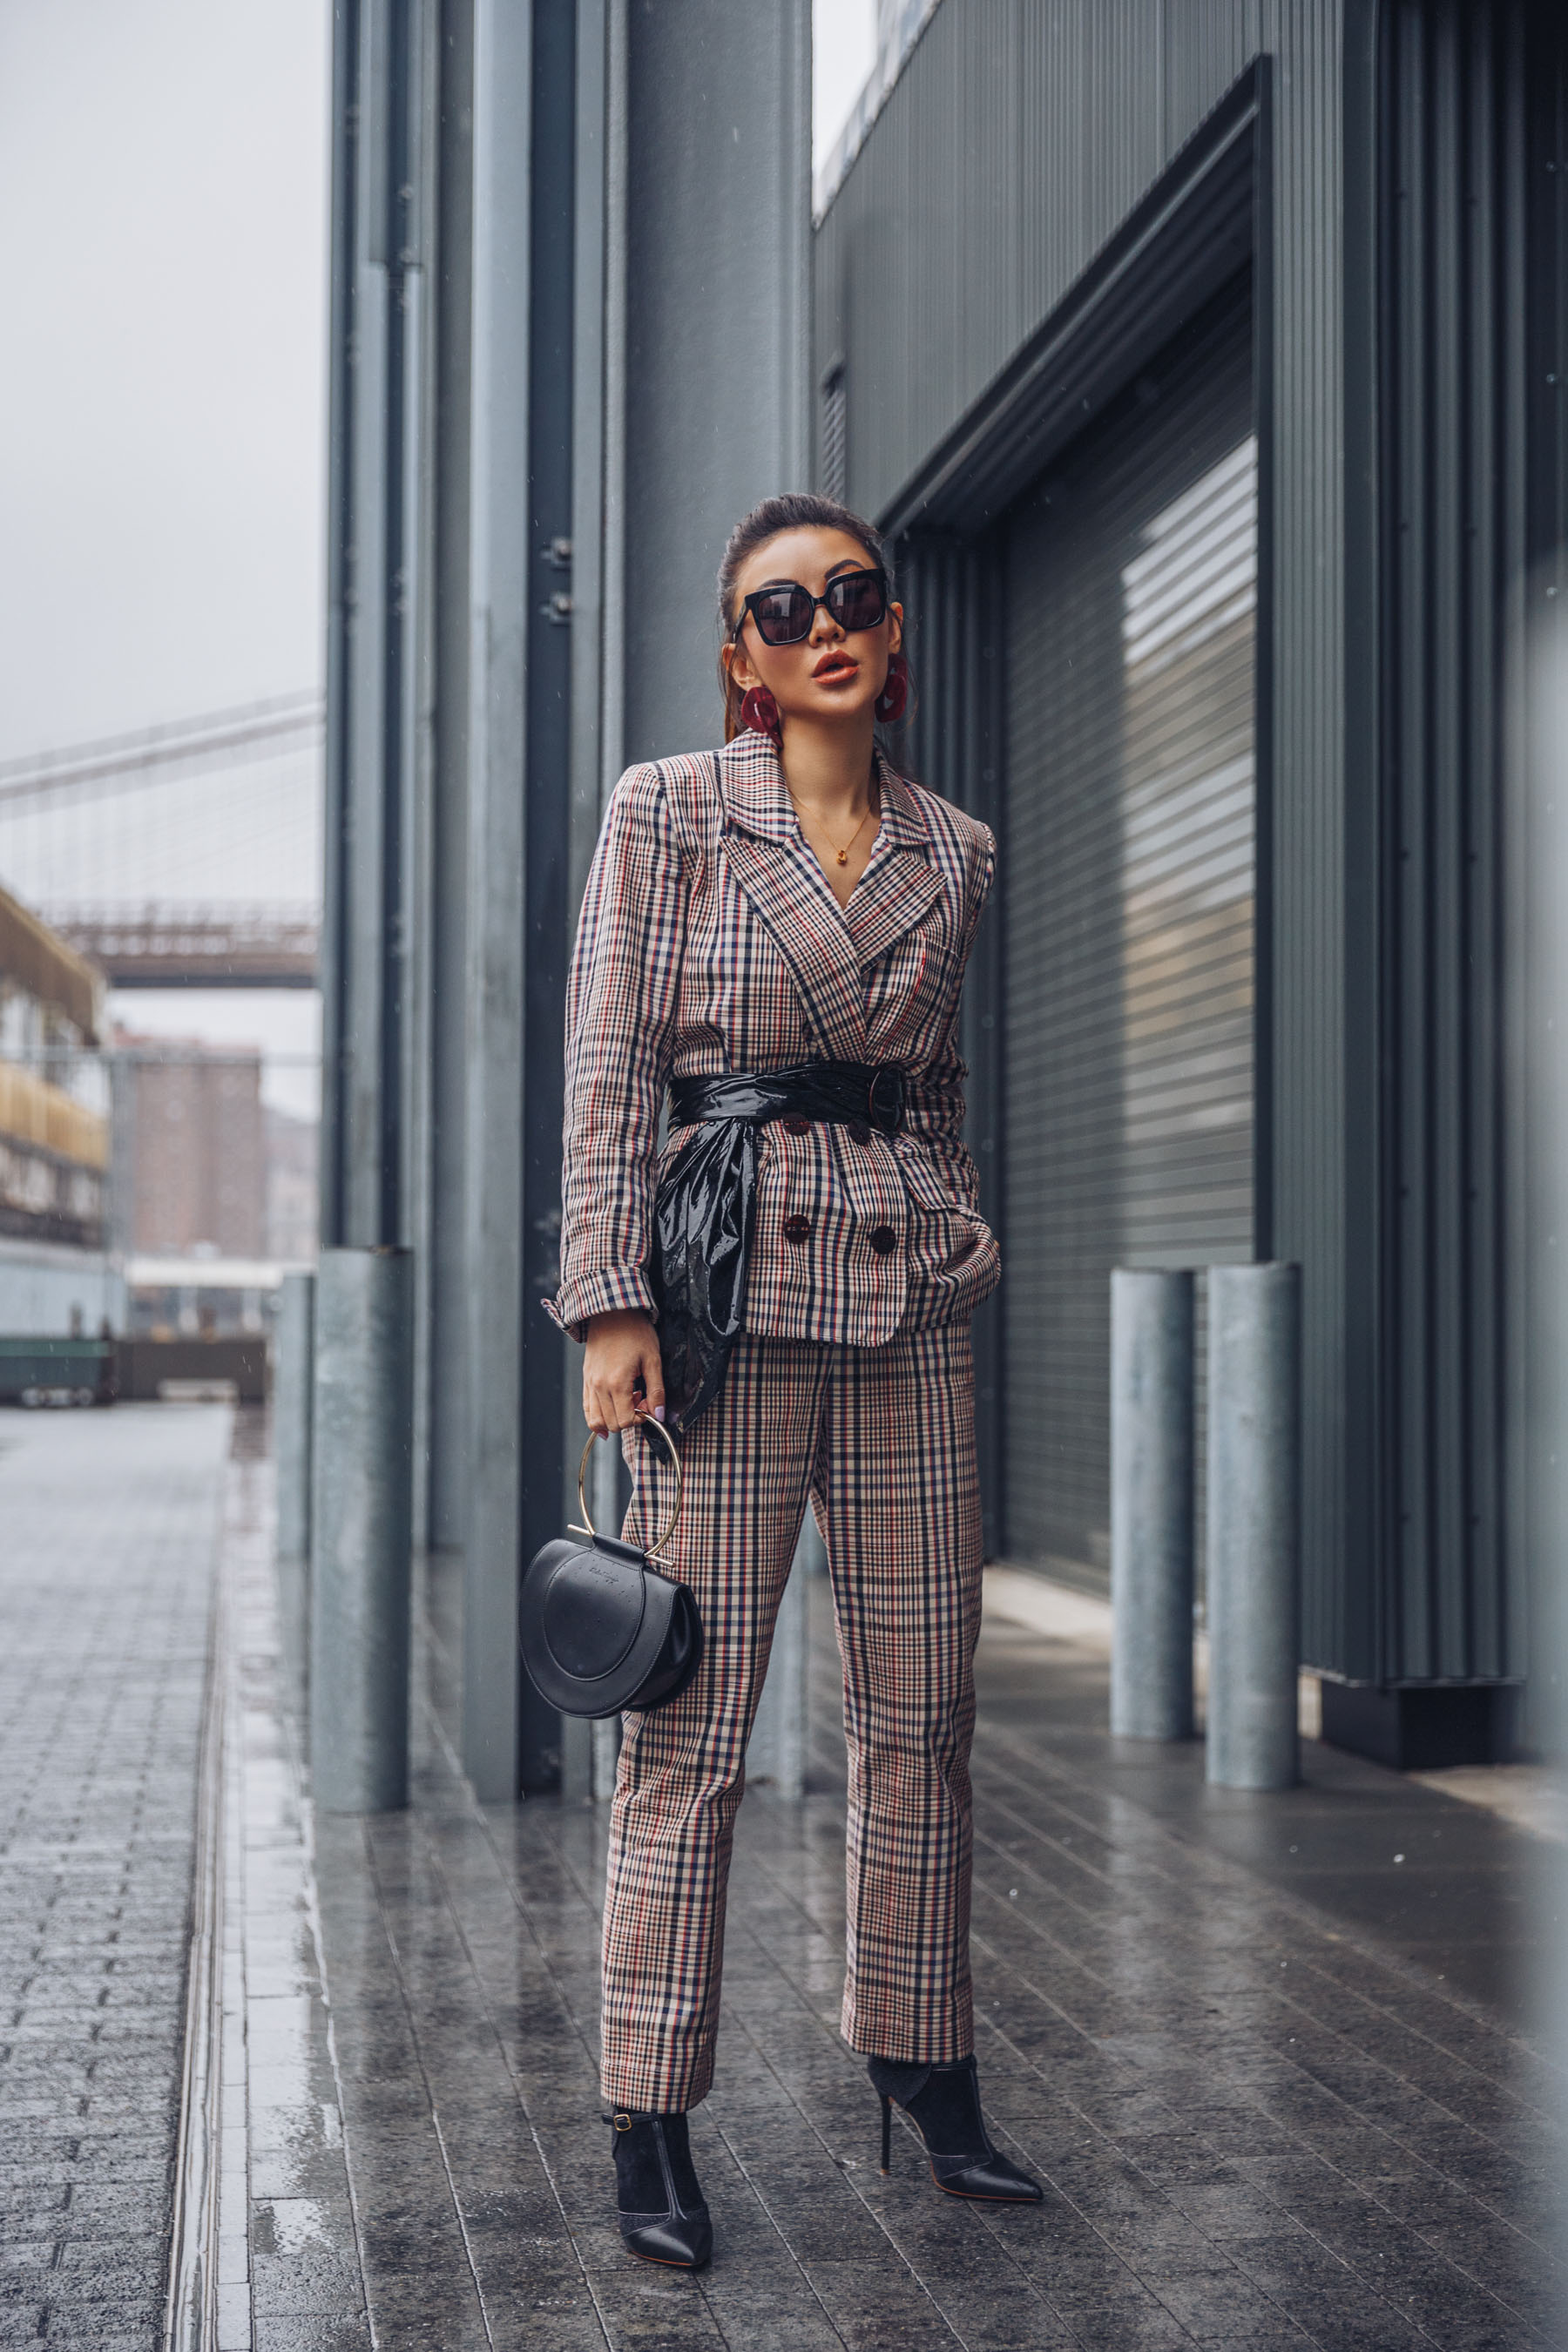 NYFW Day 4 - NotJessFashion going to Tibi Show // Notjessfashion.com // Plaid Suit with Leather Belt and Square Sunnies, NYFW 2018 street style